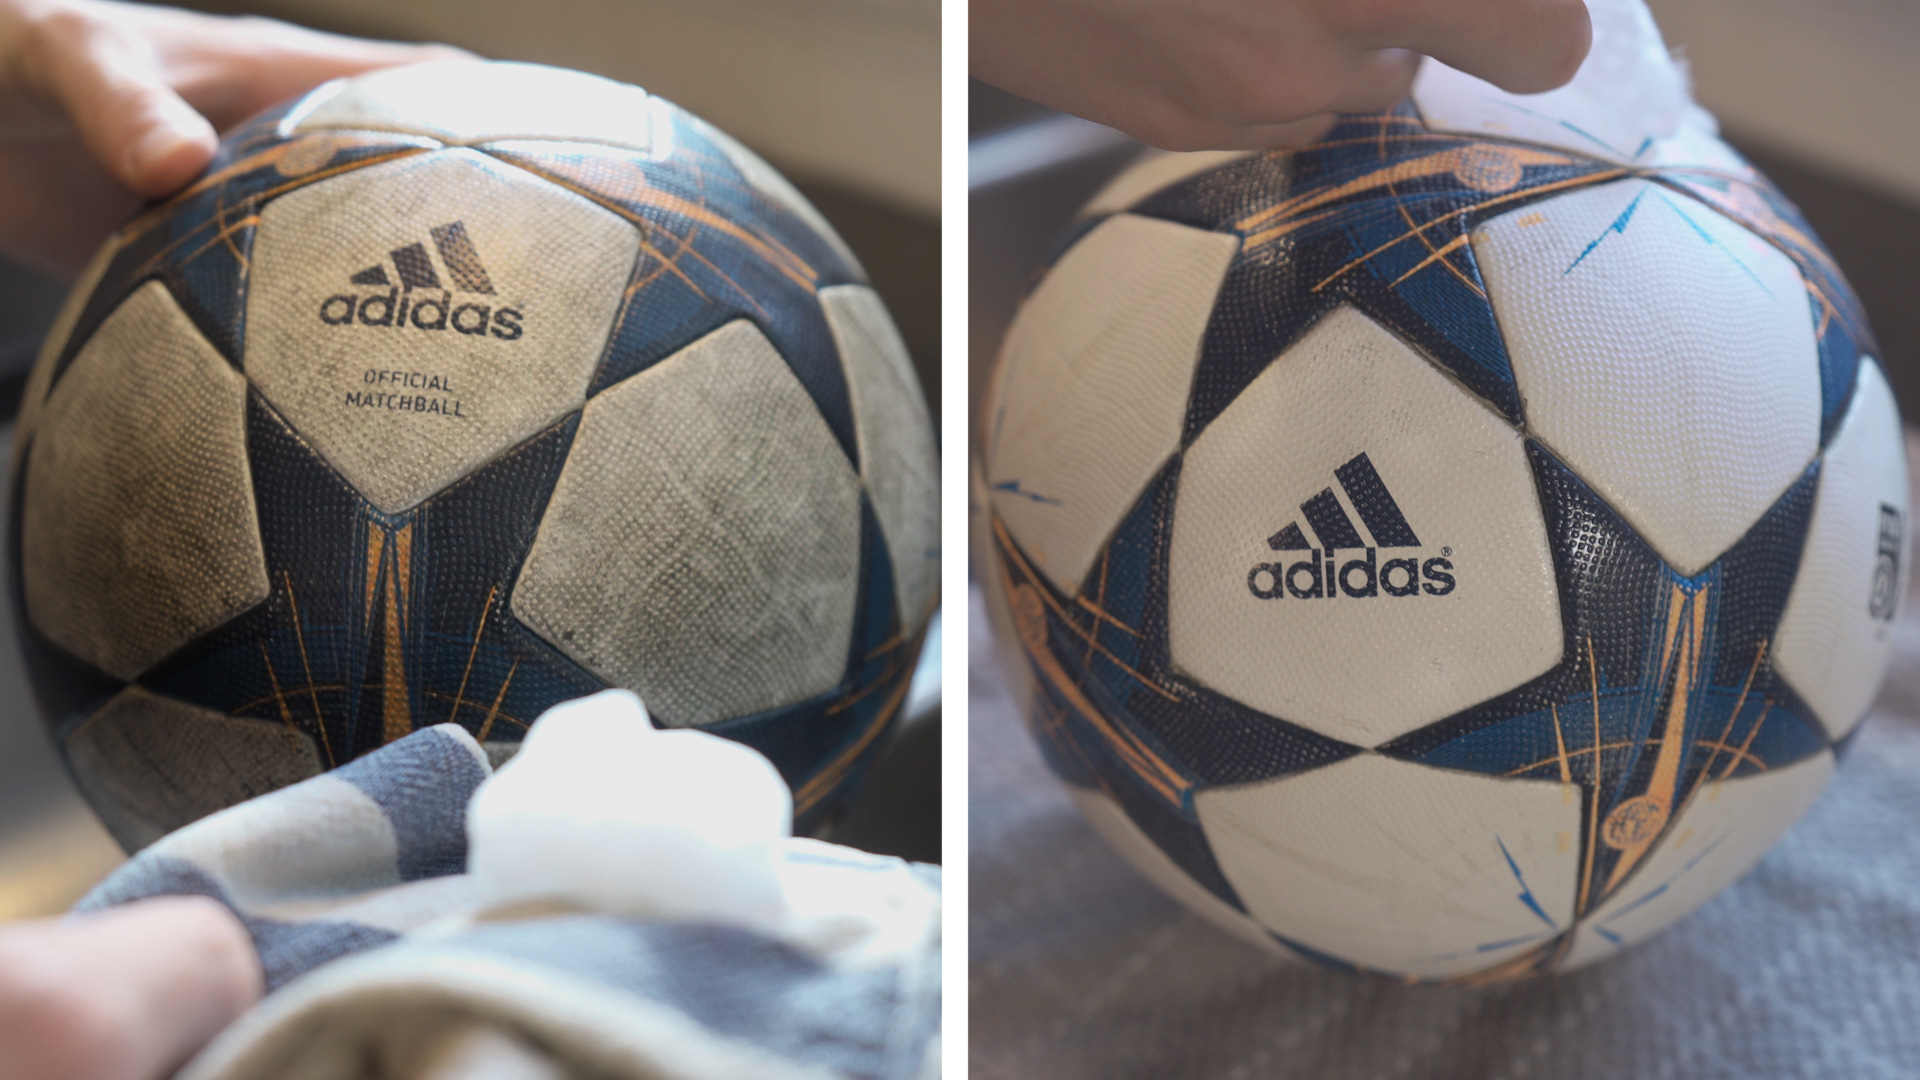 clean soccer ball